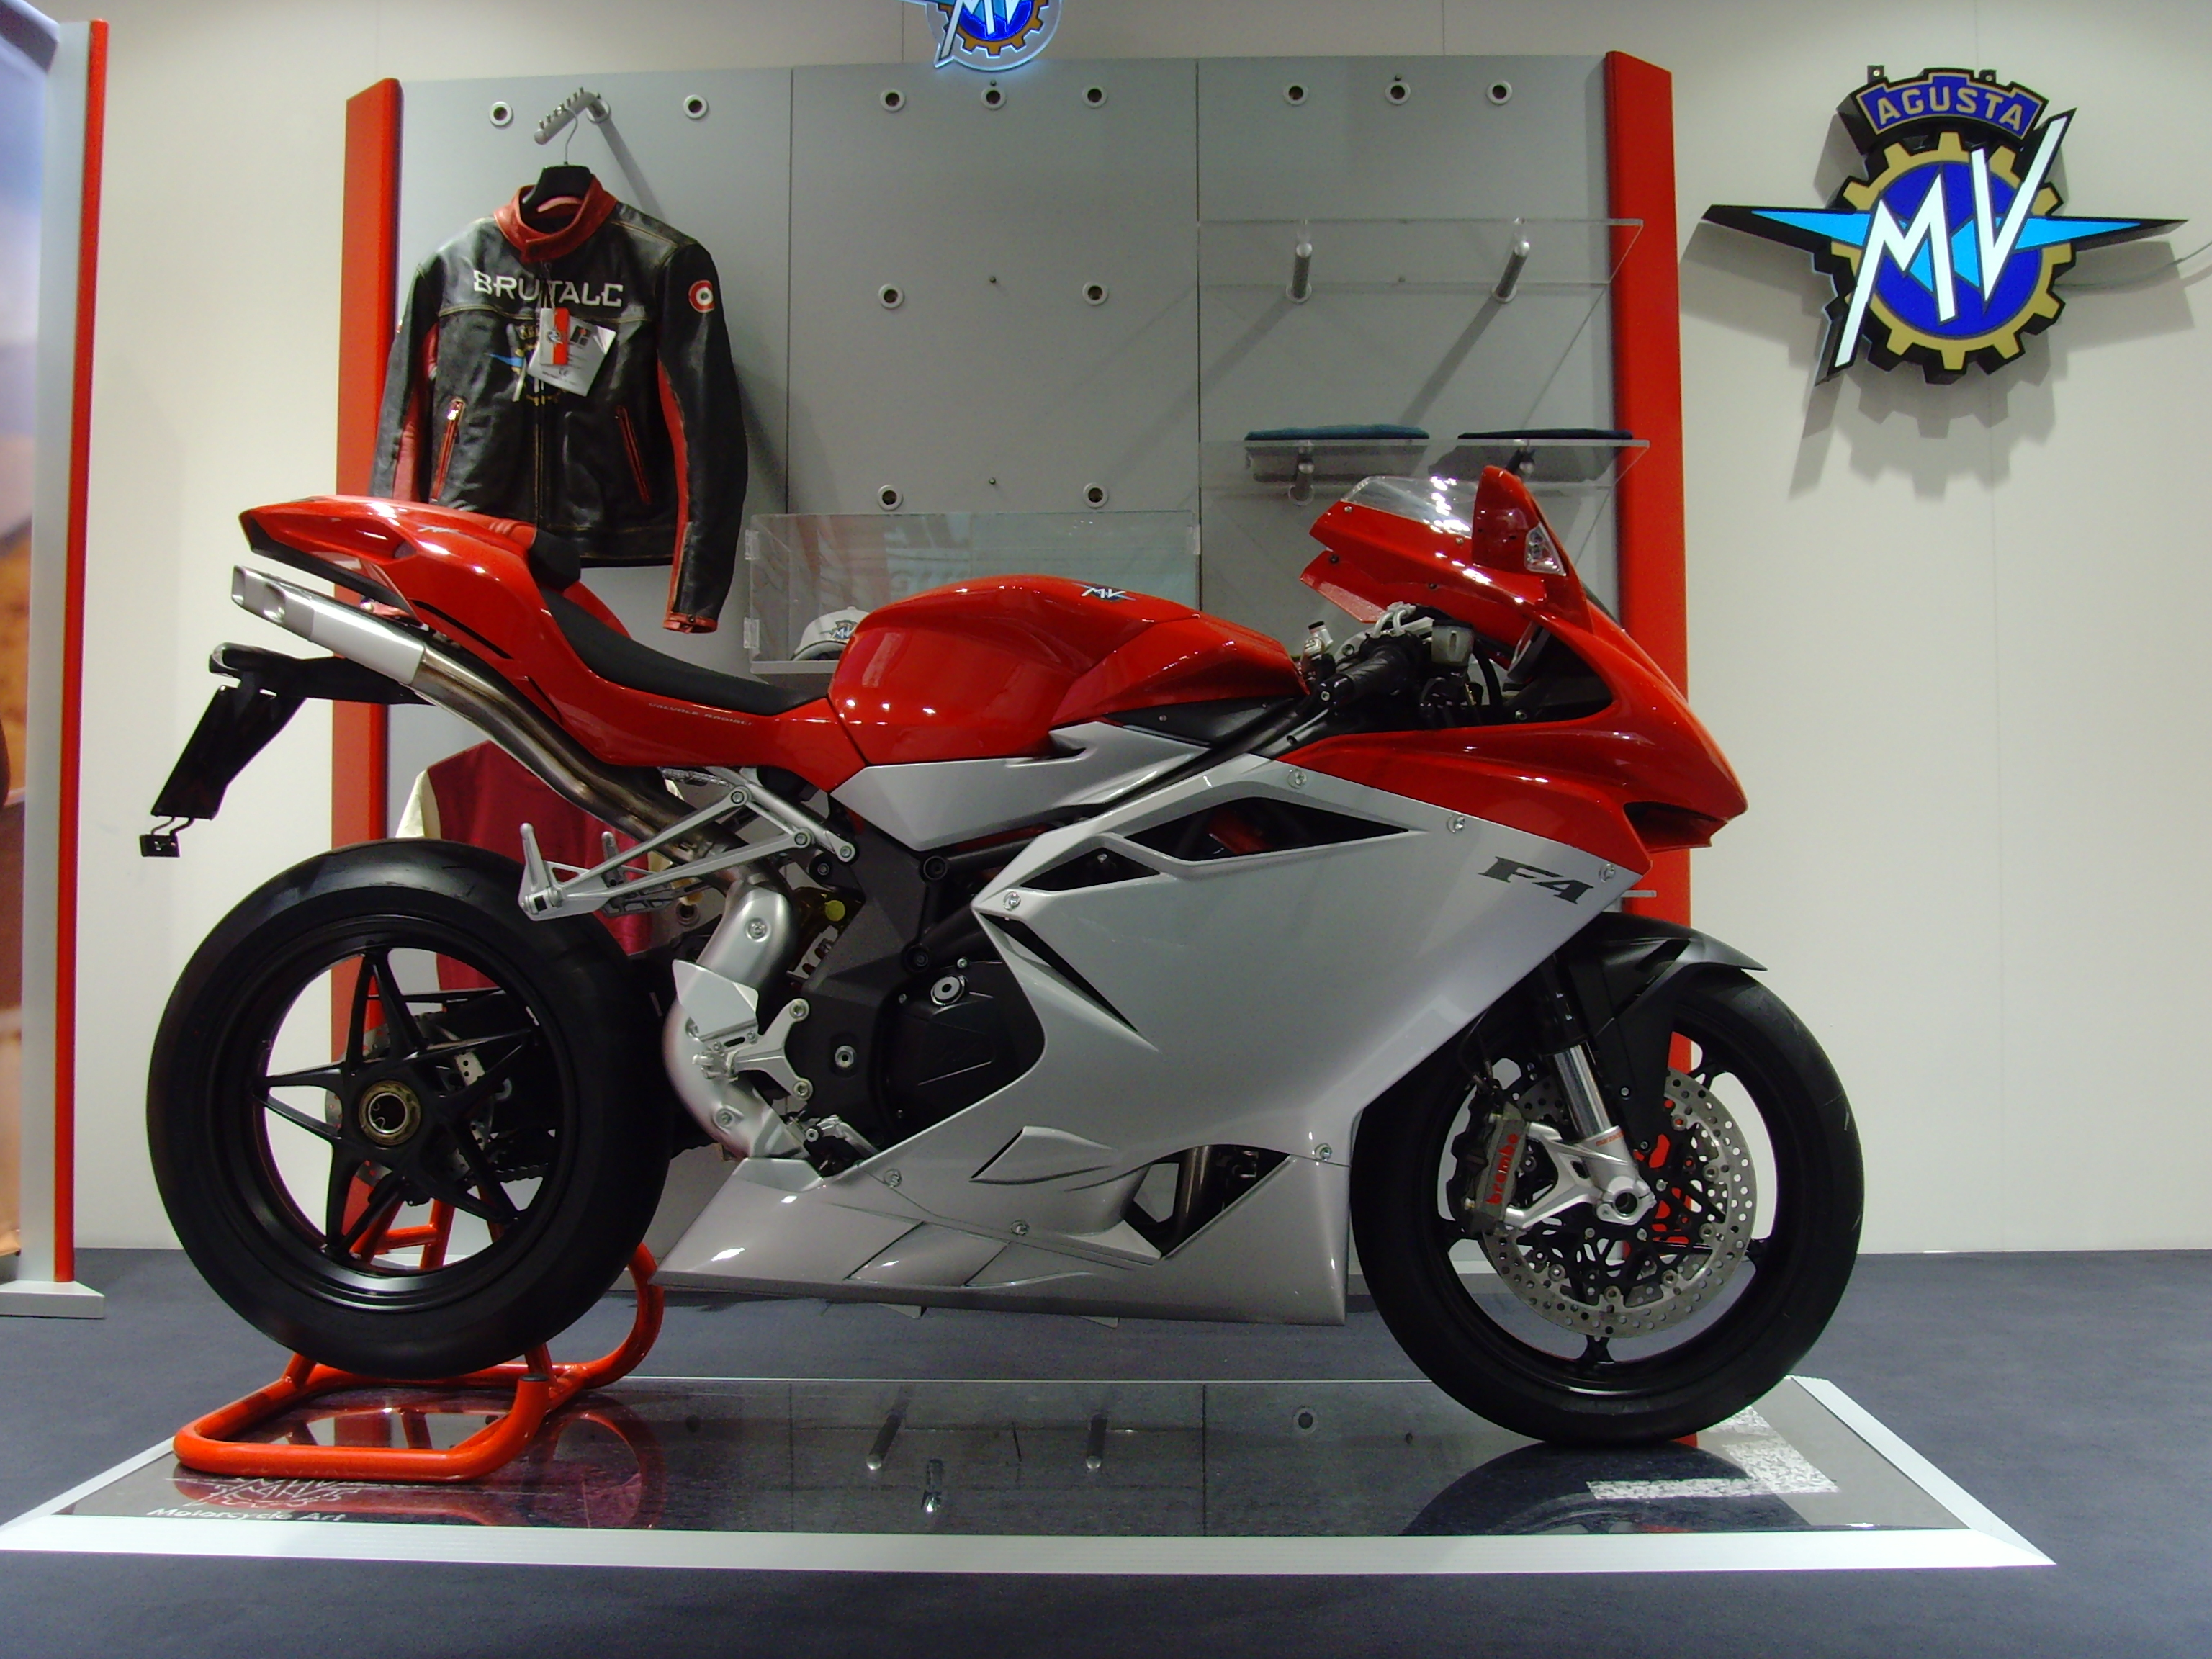 MV Agusta F4 1000 S 2006 images #113598